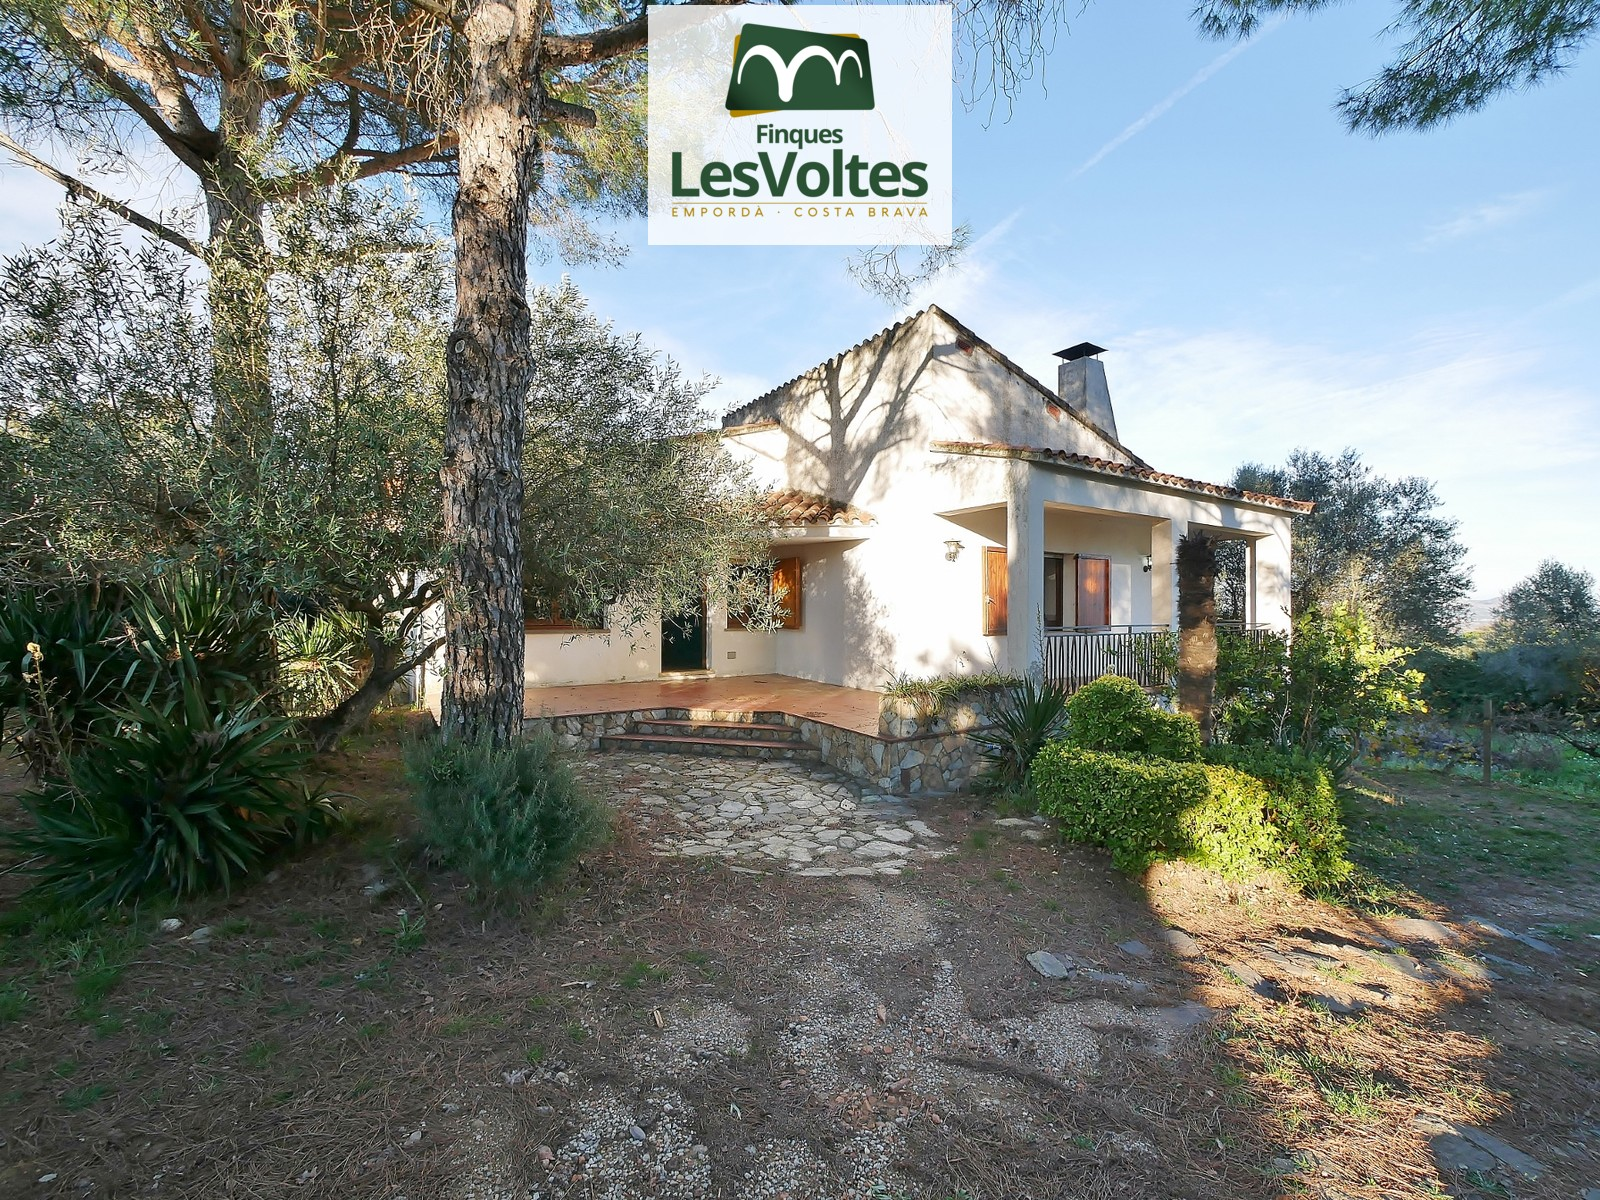 SINGLE-FAMILY HOUSE DISTRIBUTED ON THE GROUND FLOOR WITH PLOT OF 1540 M2 AND VIEWS TO THE MEDAS ISLANDS FOR SALE IN RUPIÀ